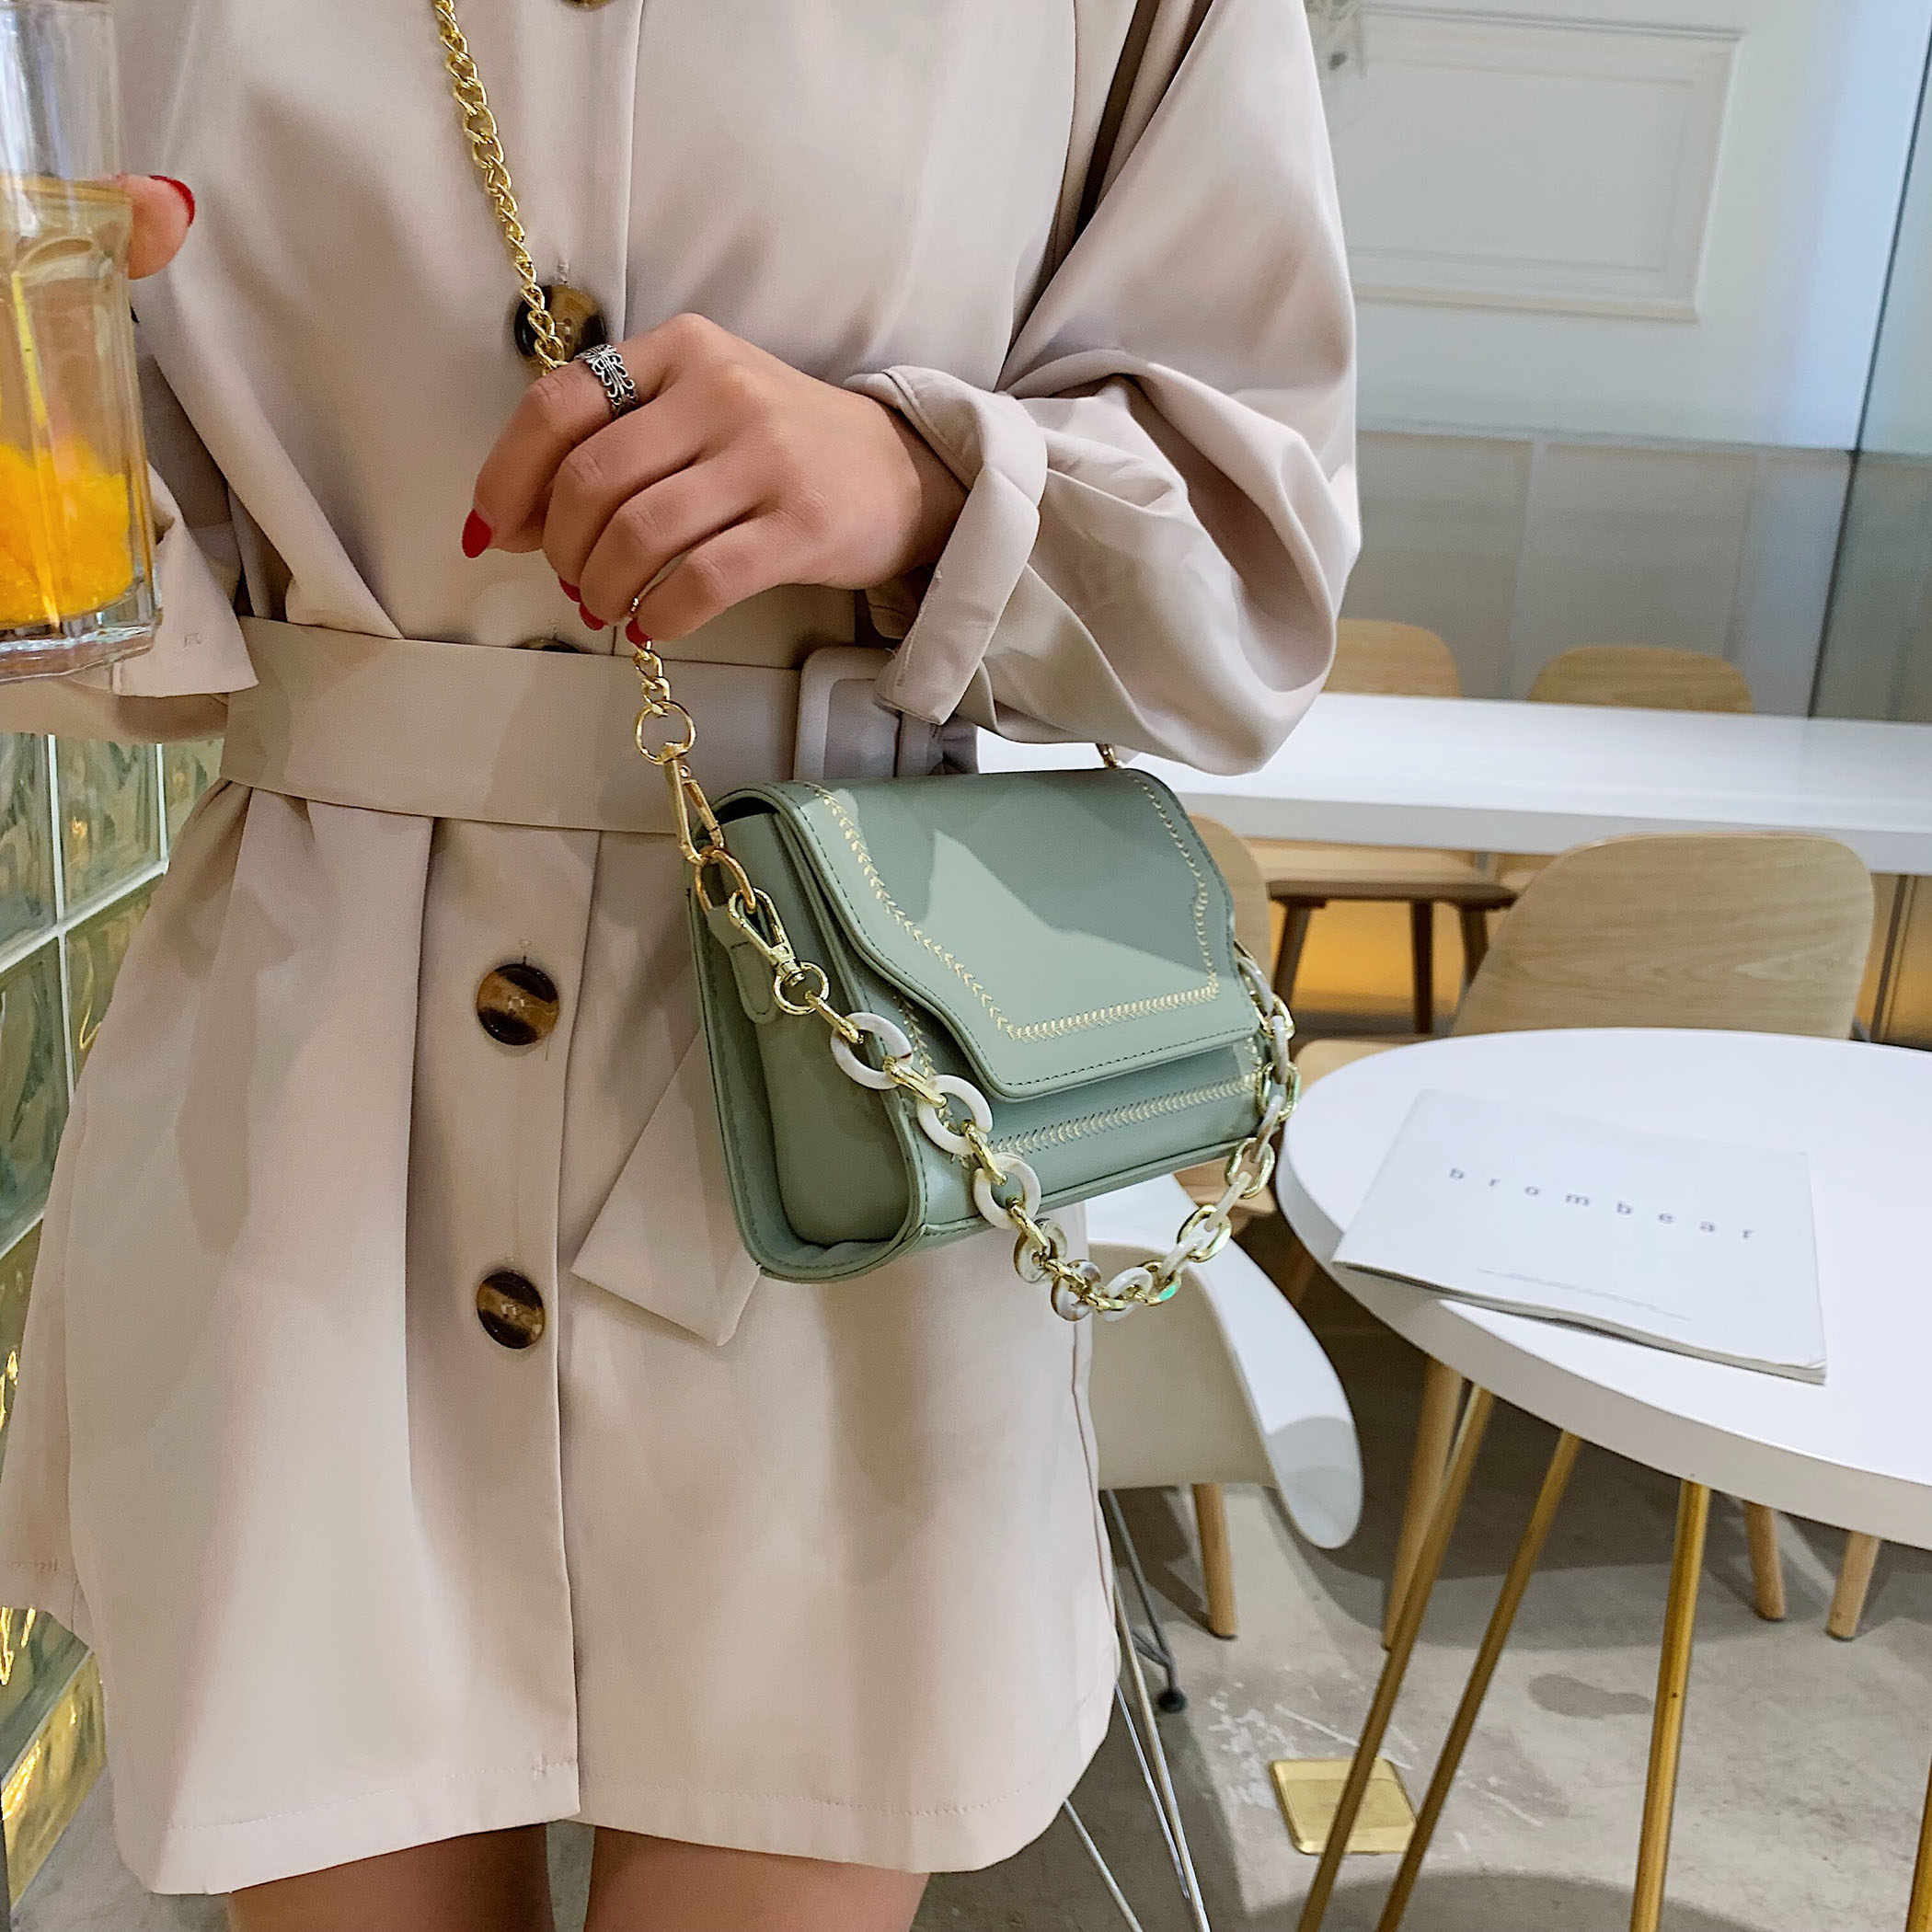 Wheat Embroidery Crossbody Bags For Women 2019 PU Leather Messenger Shoulder Bag Lady Purses and Handbags Chain Design